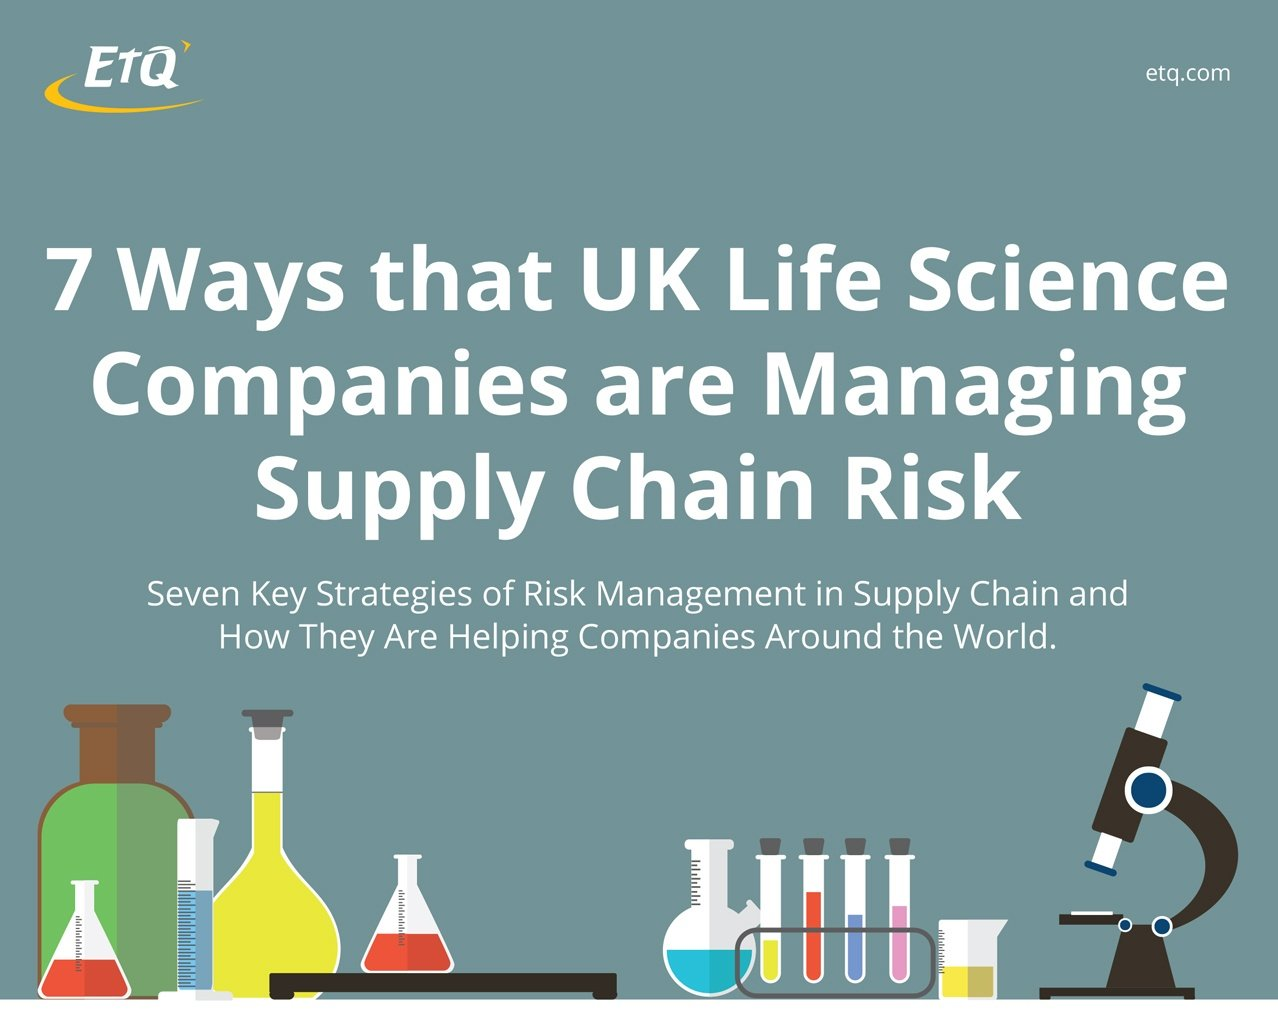 assessing and managing supply chain risks Purpose: this paper proposes a comprehensive and coherent approach for managing risks in supply chains methodology/approach: building on tummala et al's (19.